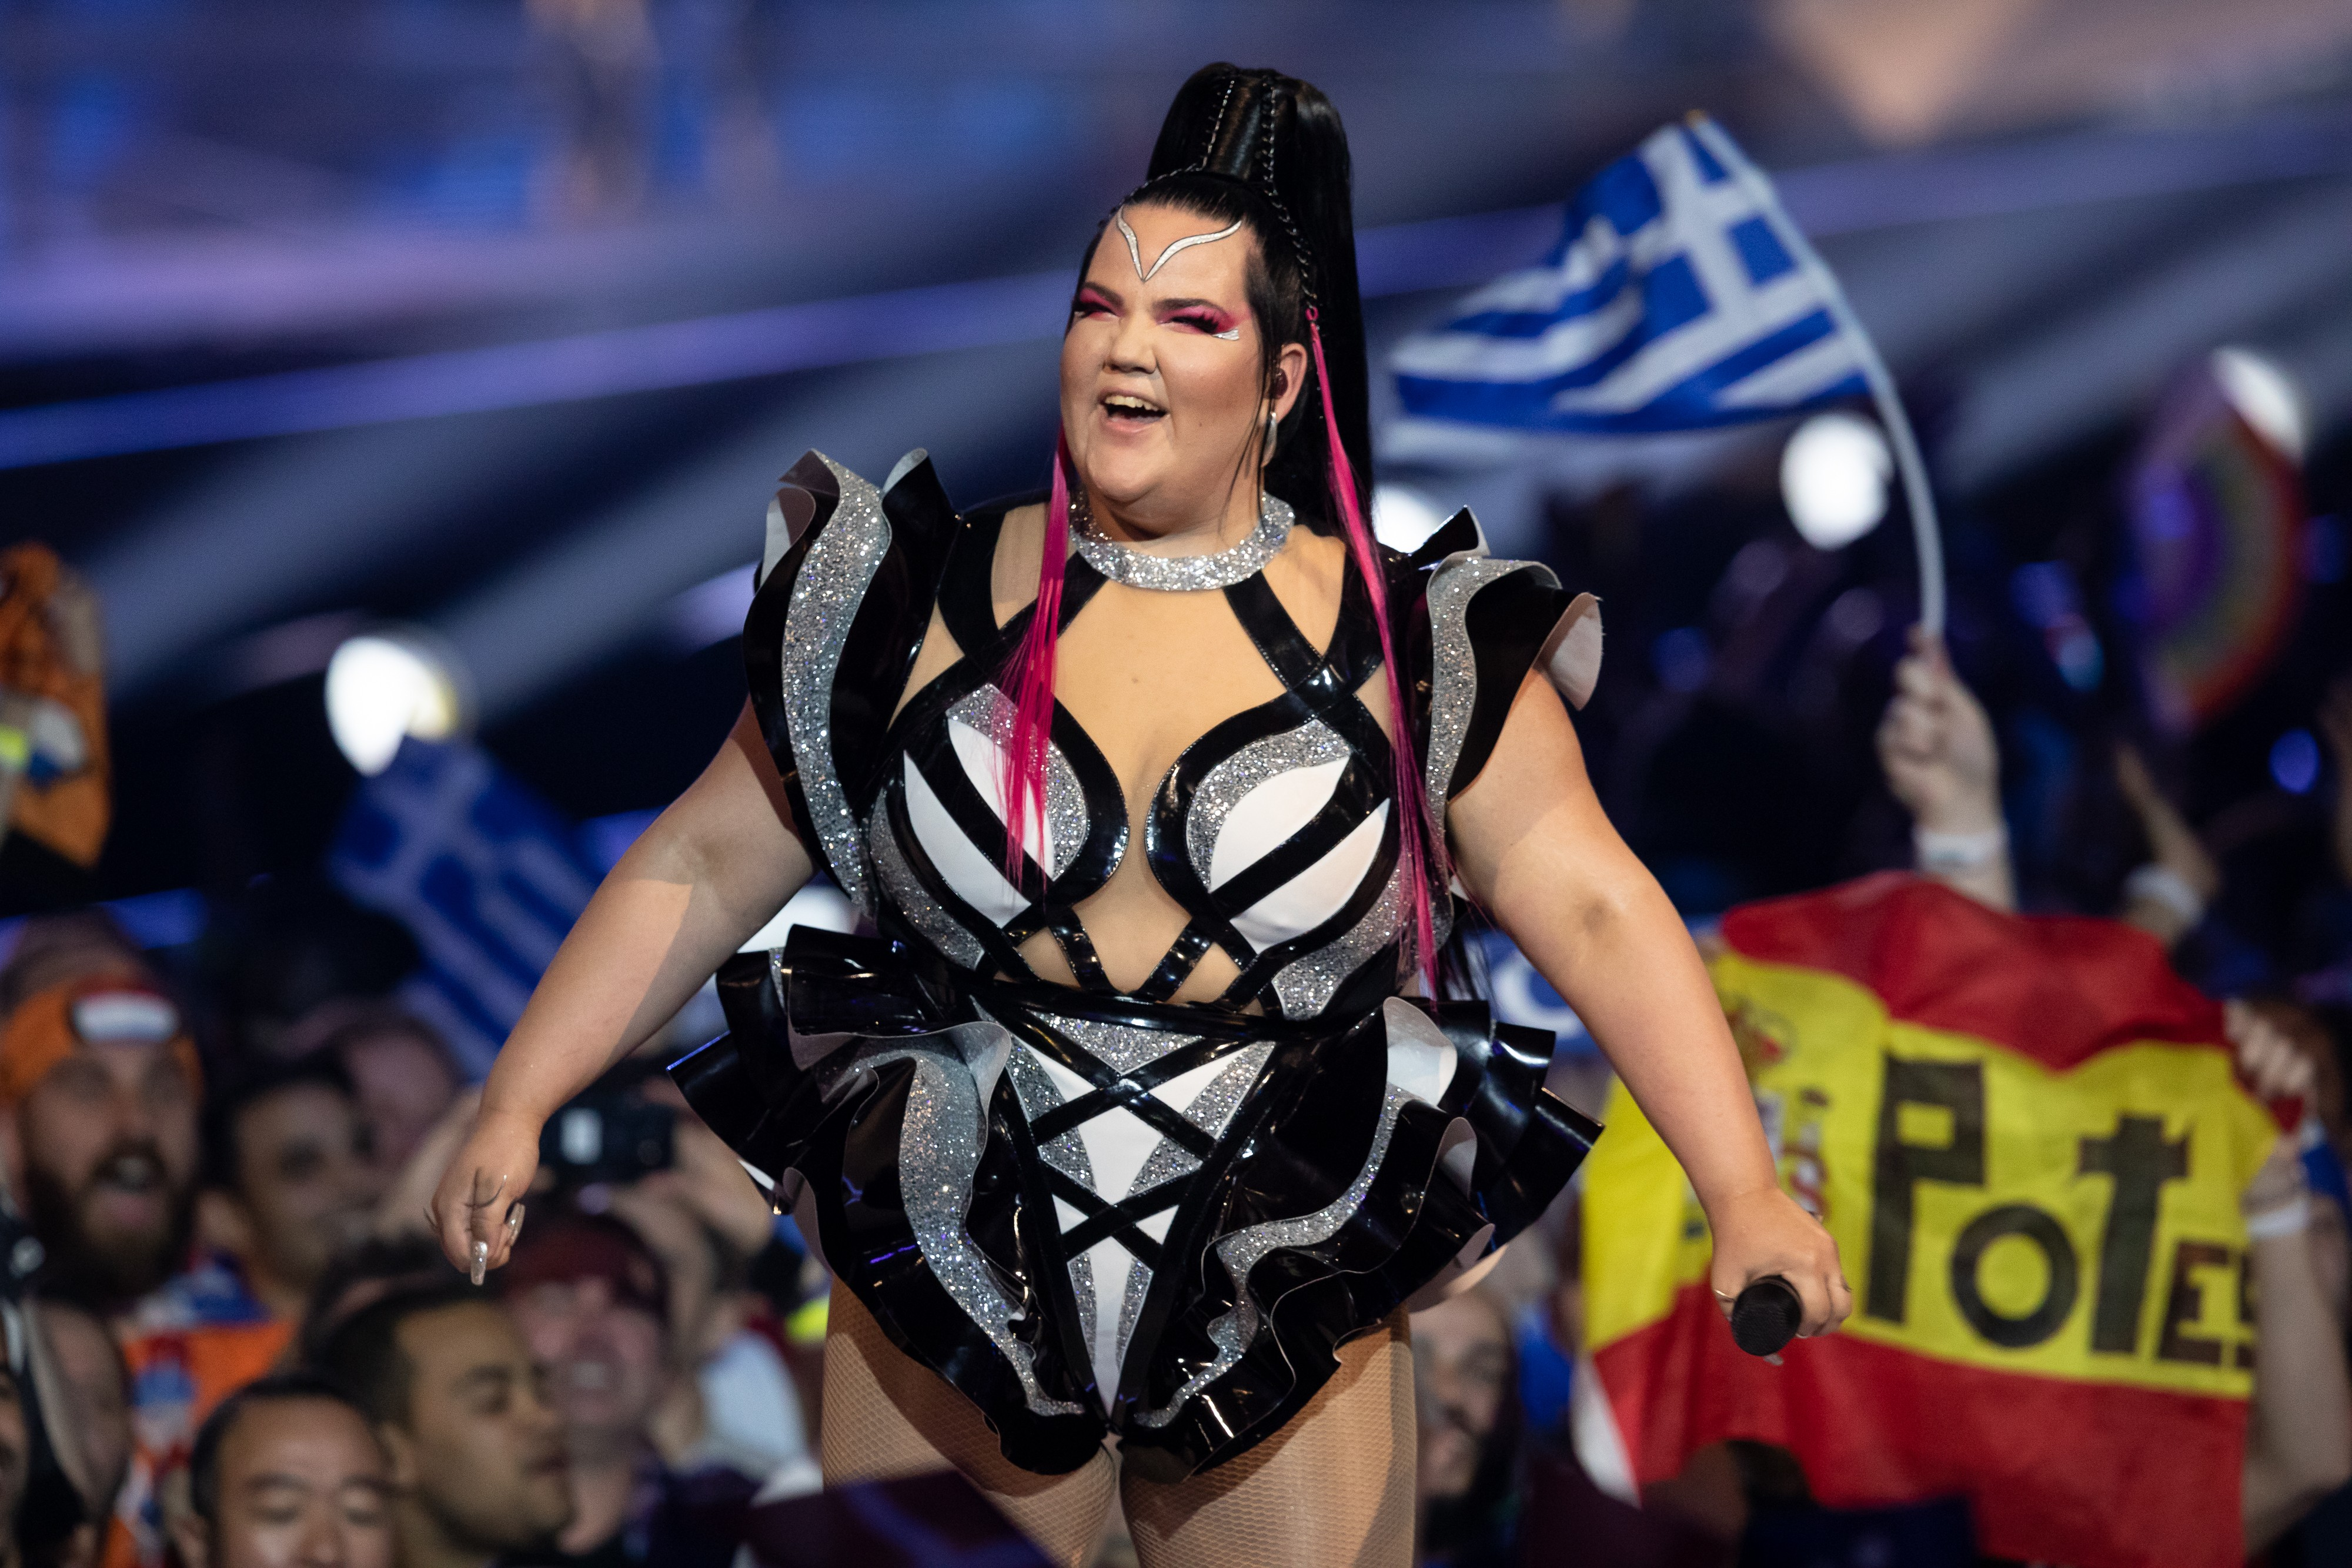 TEL AVIV, ISRAEL - MAY 14: Netta Barzilai, Winner of the 2018 Eurovision award, performs during the 64th annual Eurovision Song Contest held at Tel Aviv Fairgrounds on May 14, 2019 in Tel Aviv, Israel. (Photo by Guy Prives/Getty Images)